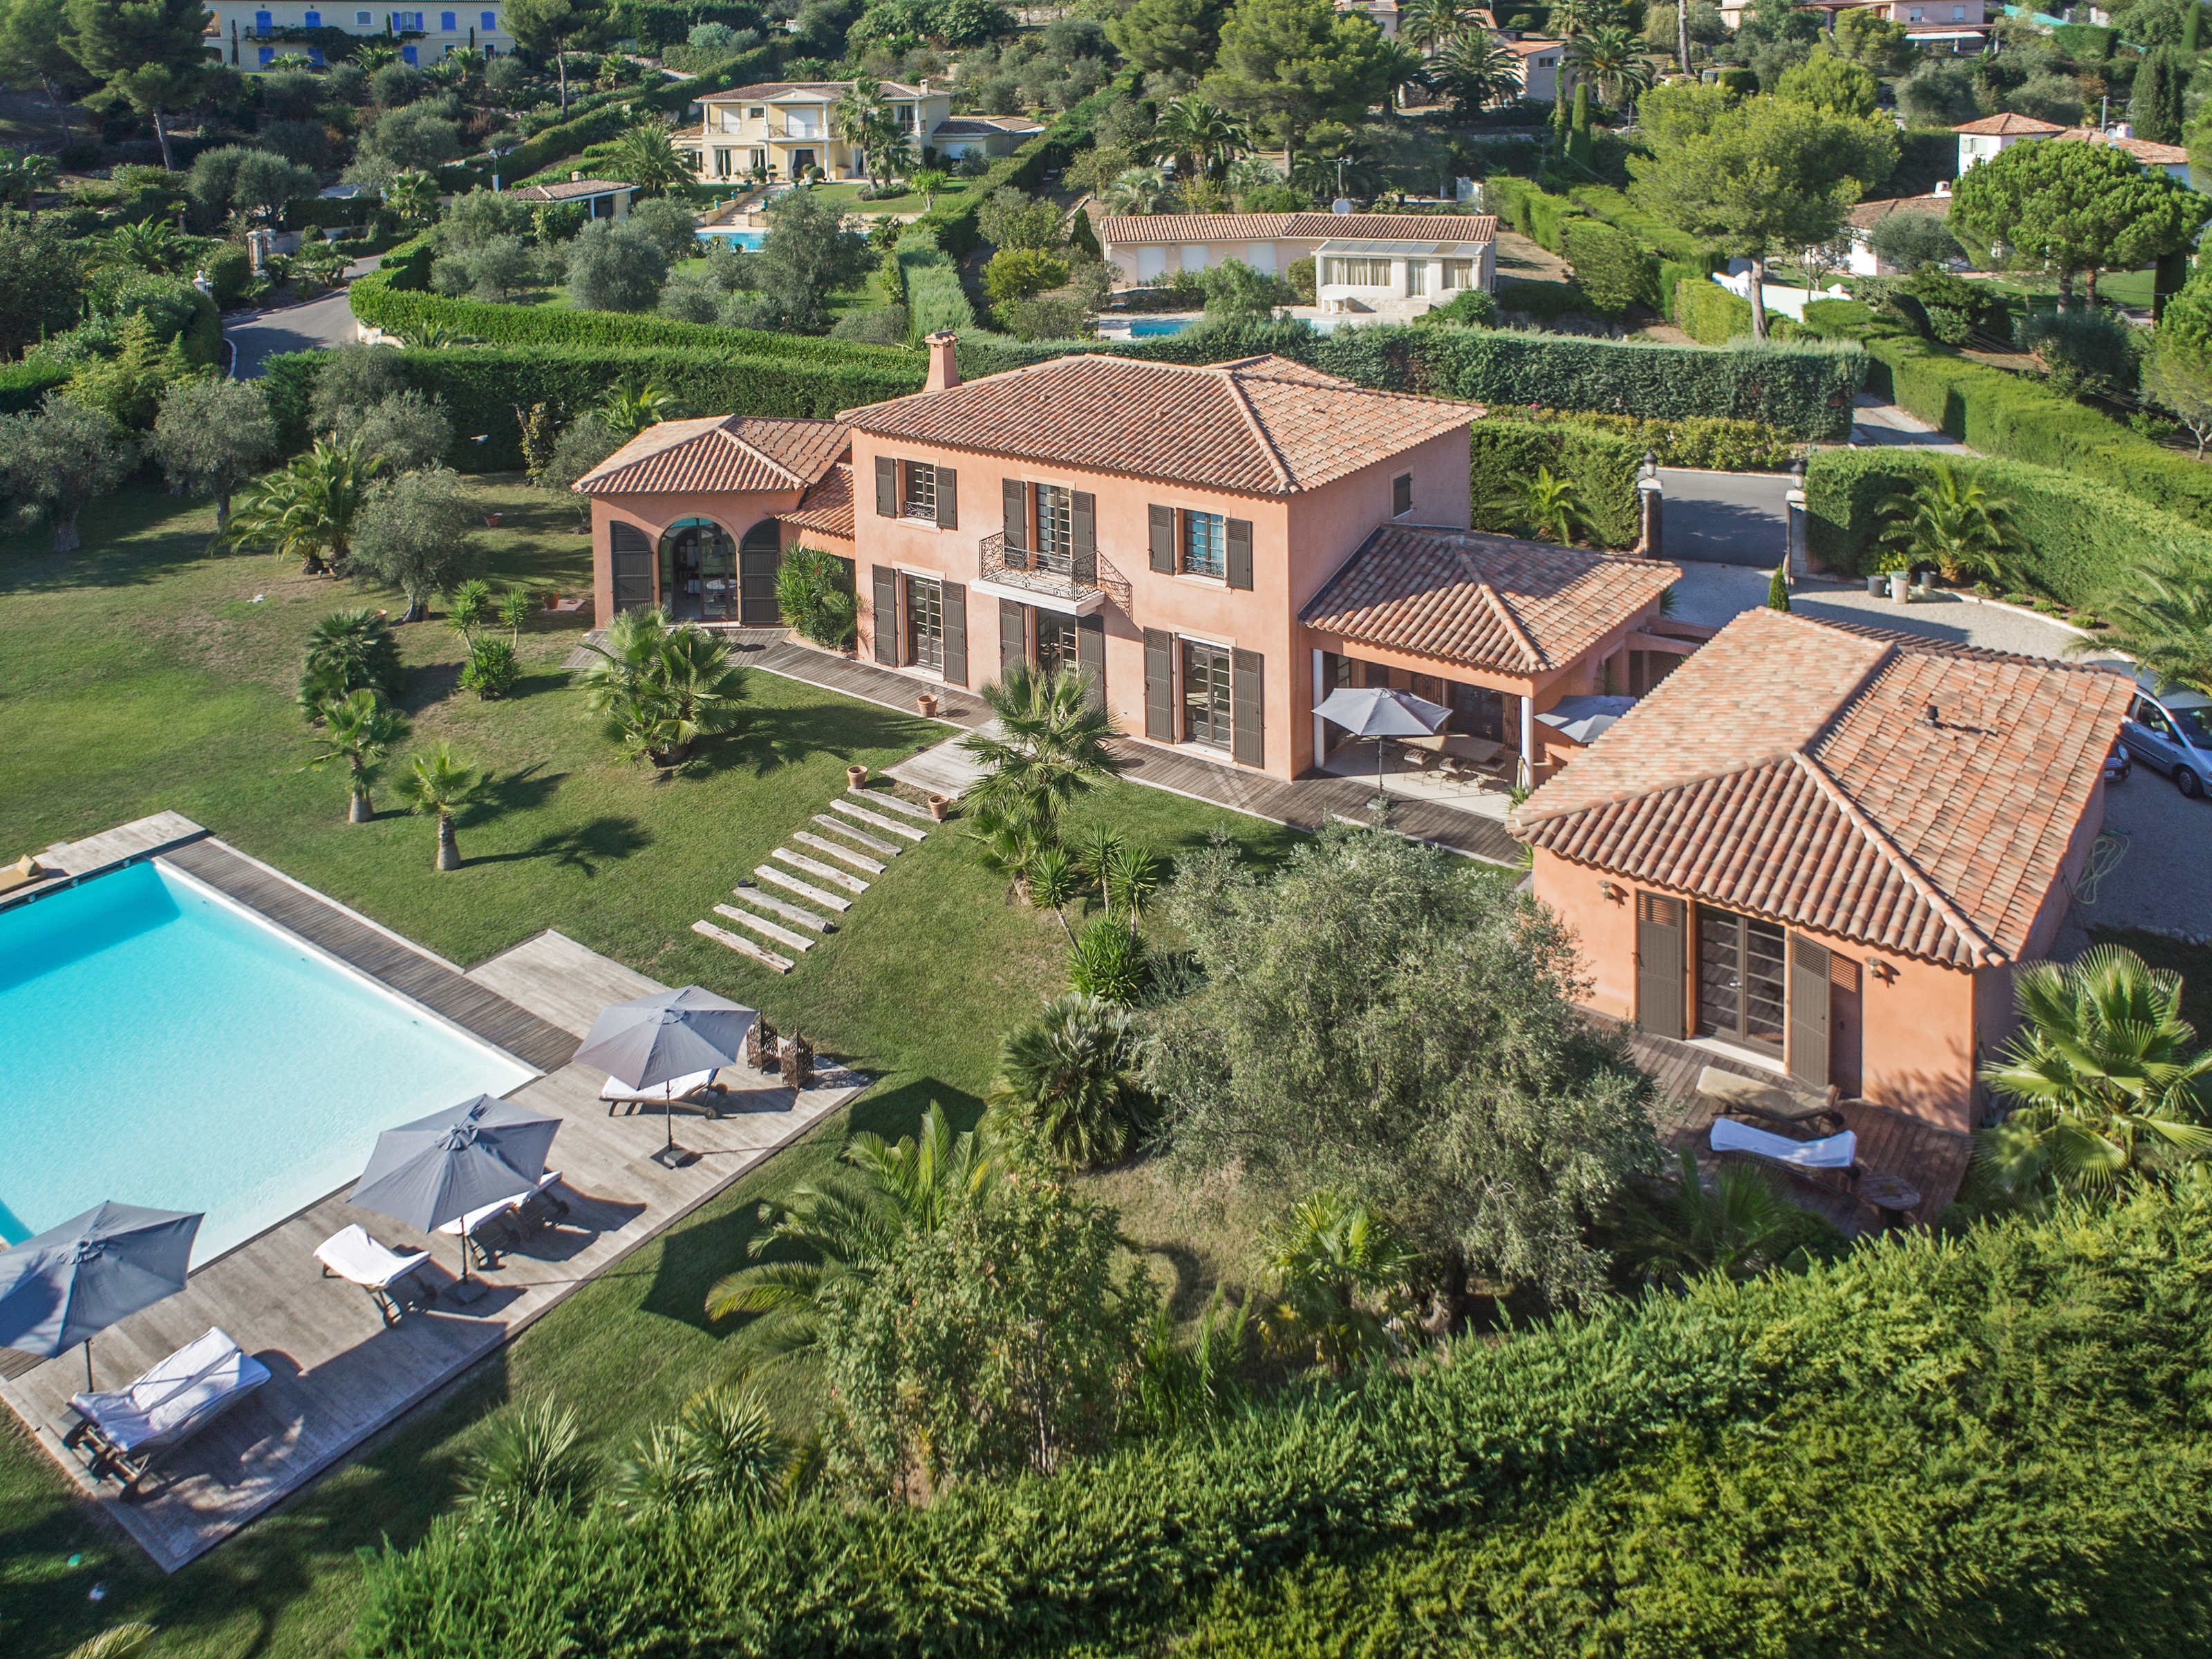 Single Family Home for Sale at Beautiful Family Home Mougins Mougins, Provence-Alpes-Cote D'Azur 06250 France